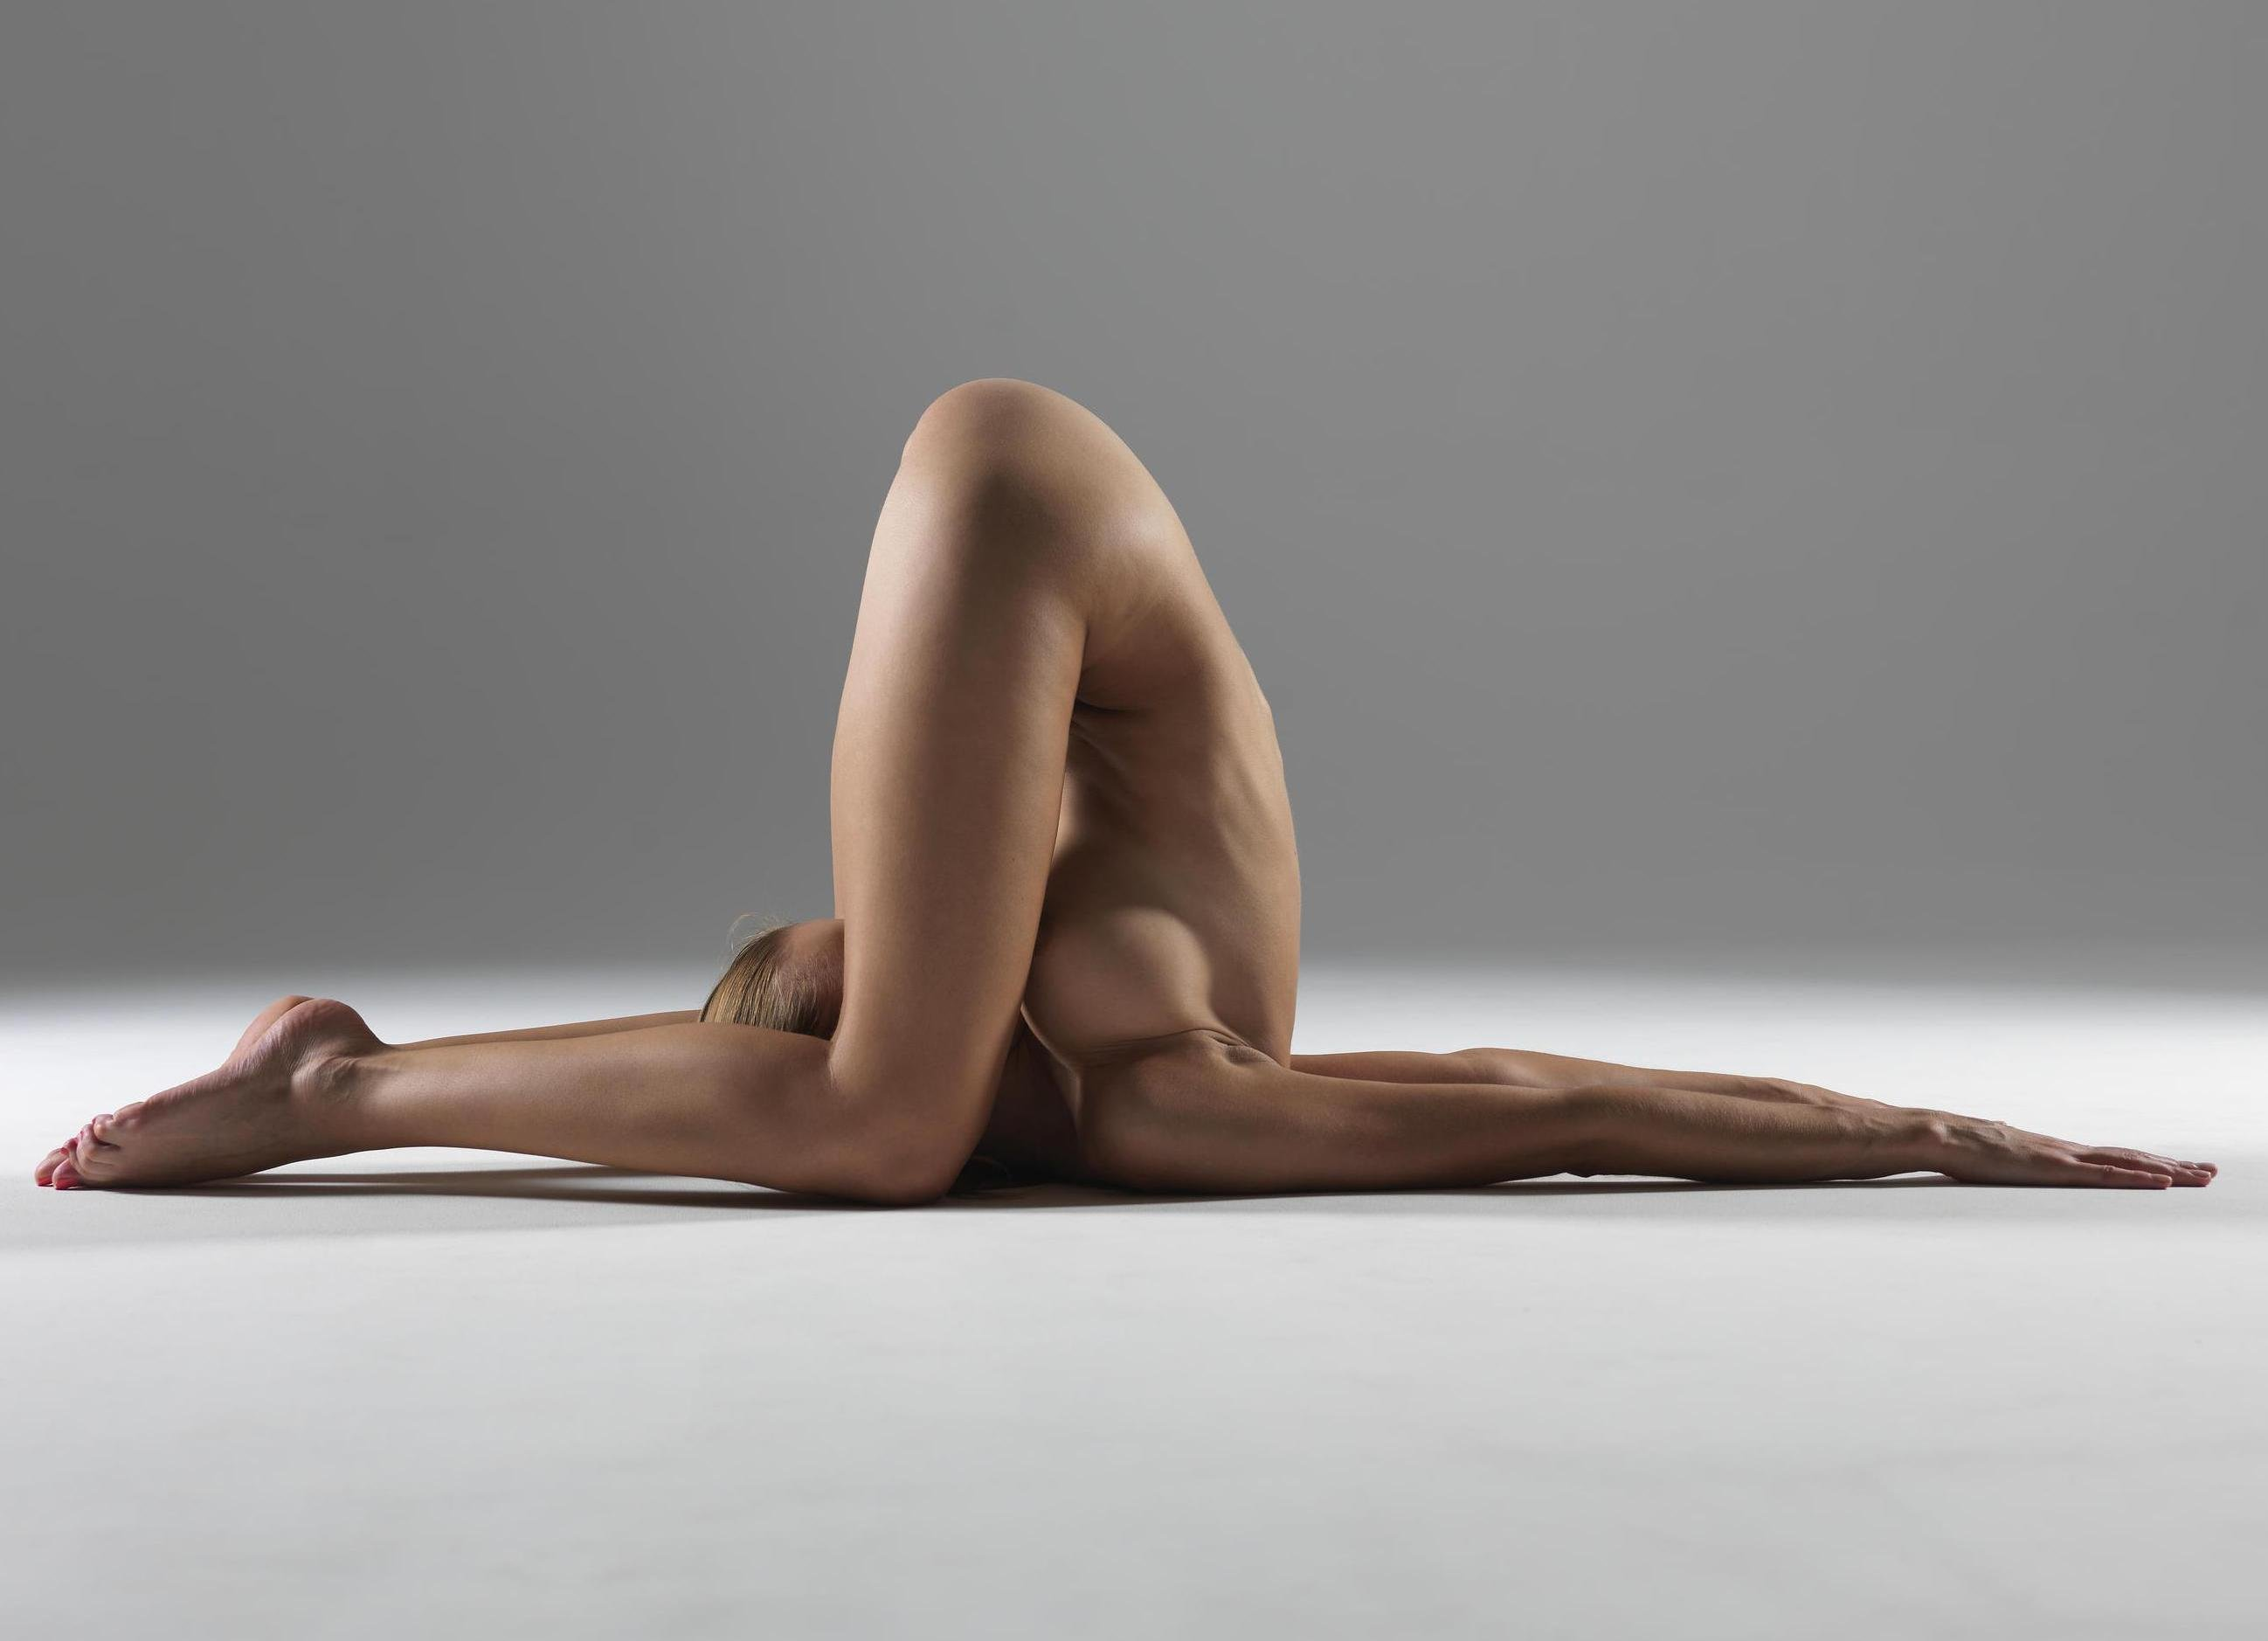 Artistic nude models exercising